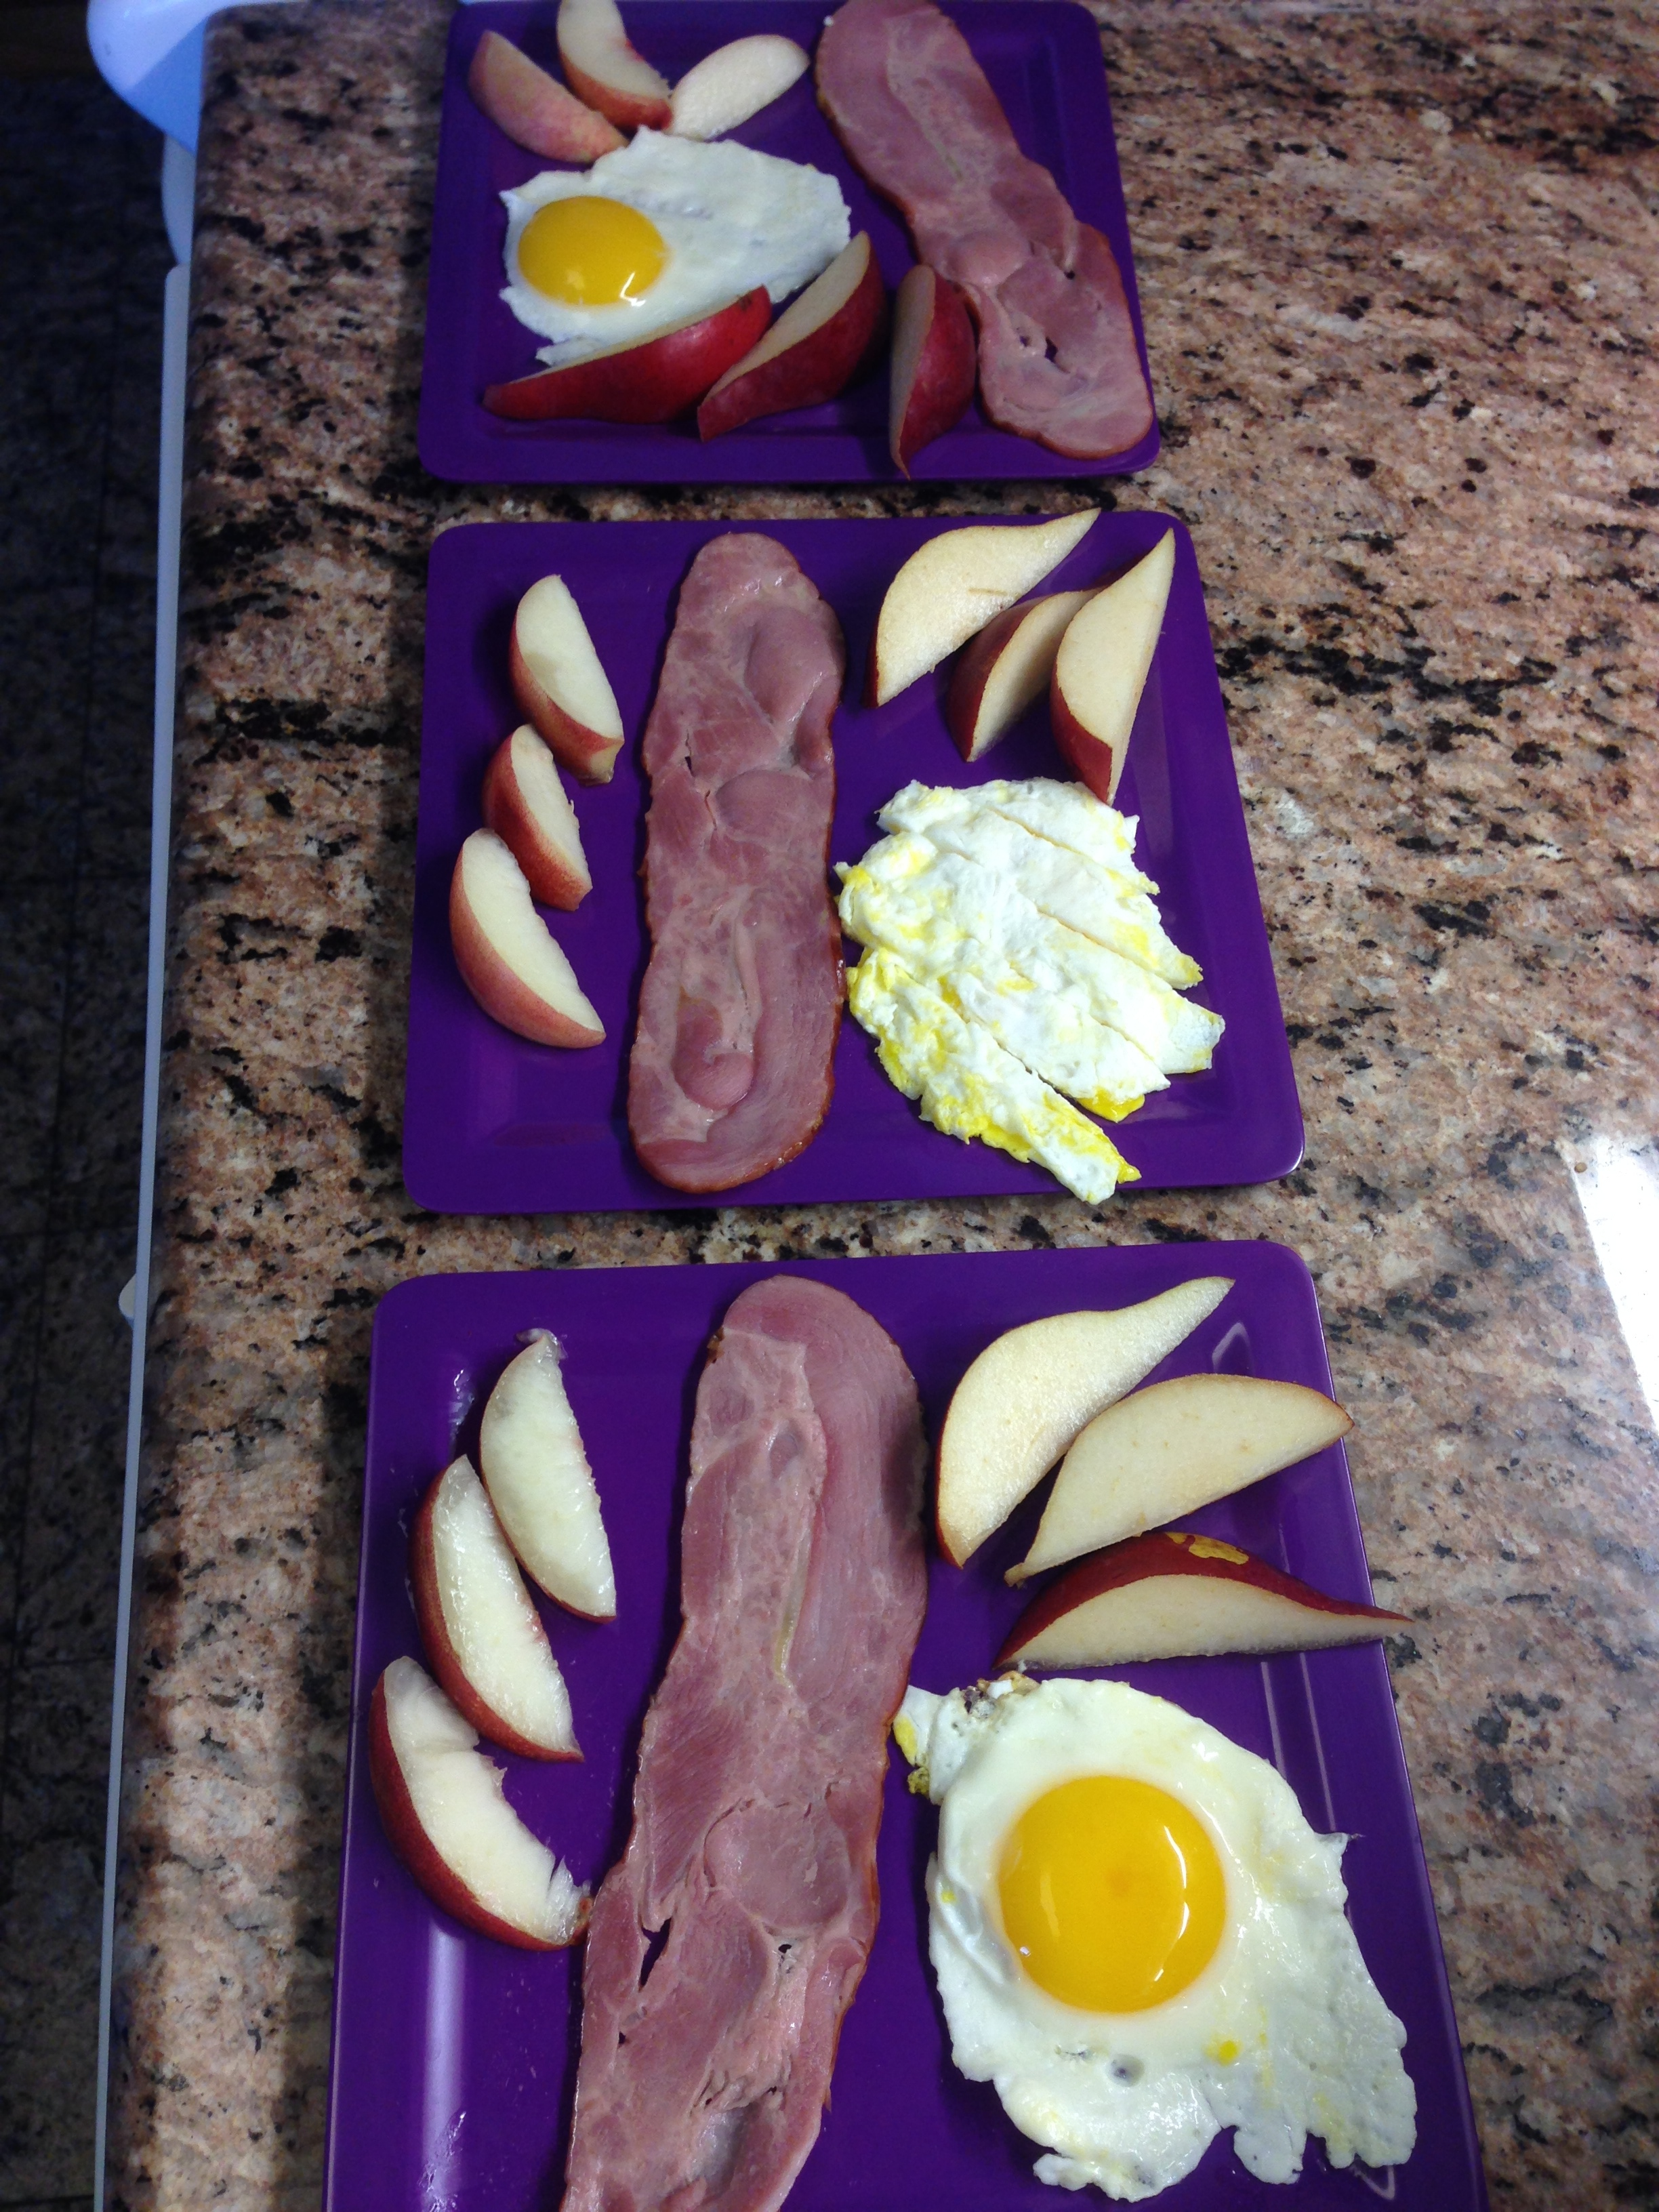 white nectarine, red pear, egg and Applegate organic turkey bacon